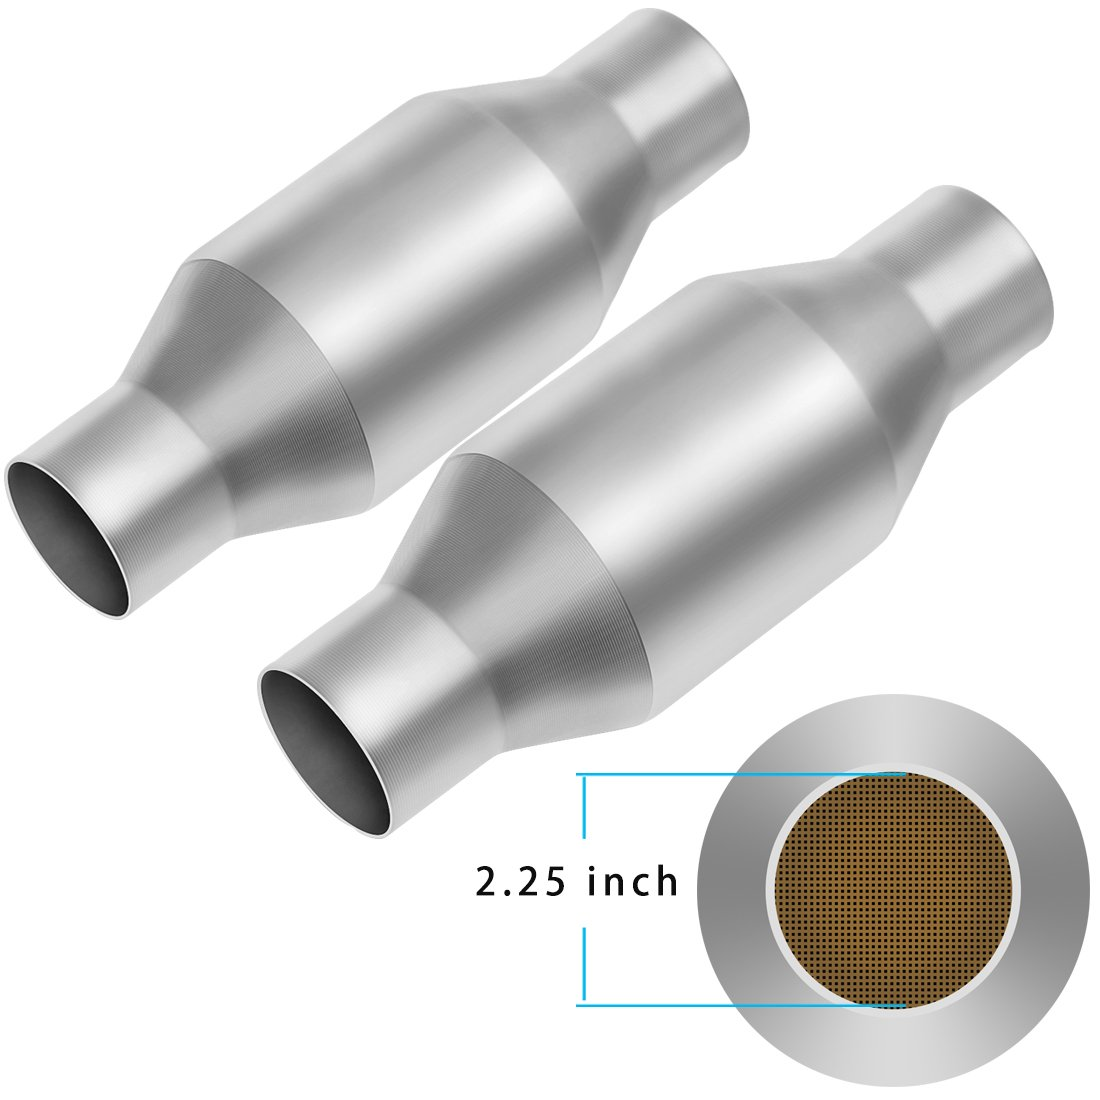 2.25'' Inlet/Outlet Universal Catalytic Converter 2 1/4'' pipe Direct Fit Converter High Flow Stainless Steel EPA Approved (2X2.25inch) by AUTOSAVER88